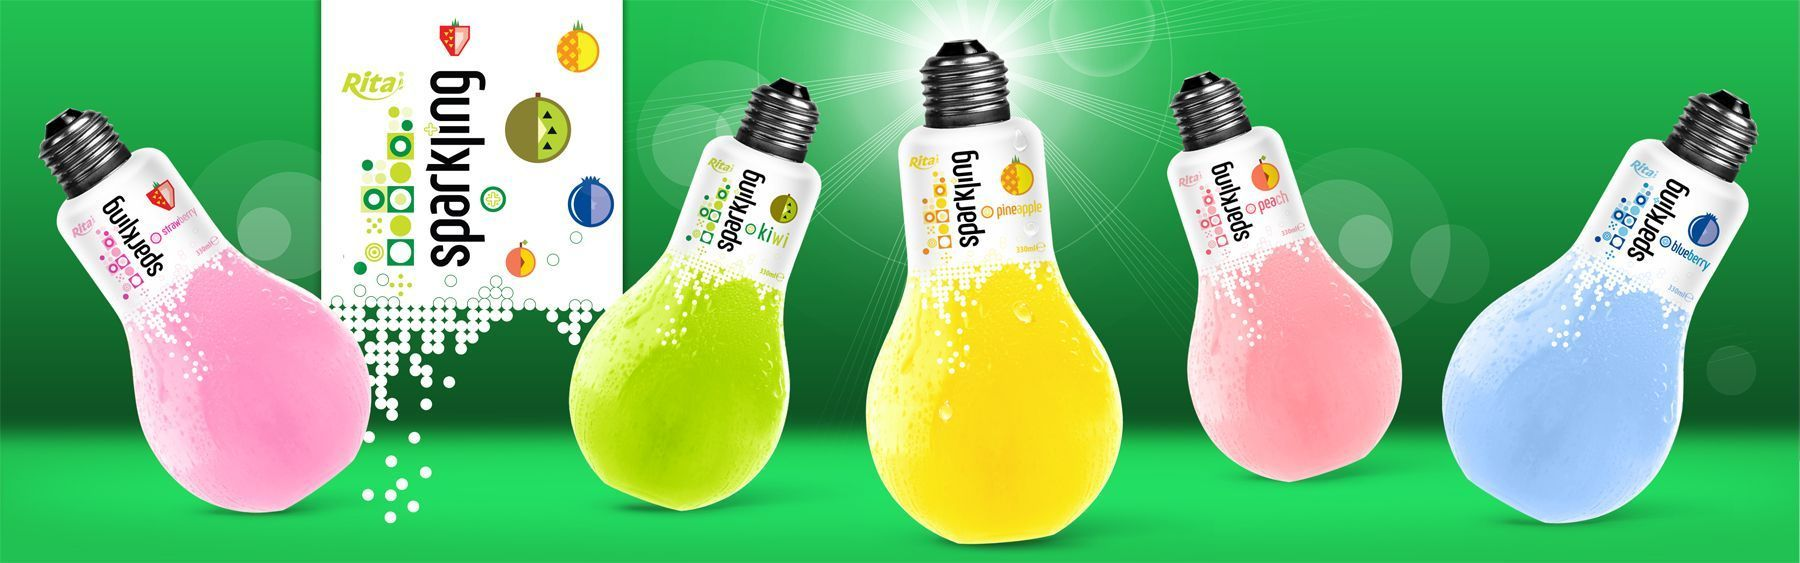 Baner-web_Sparkling-330ml-Pet-Bulb